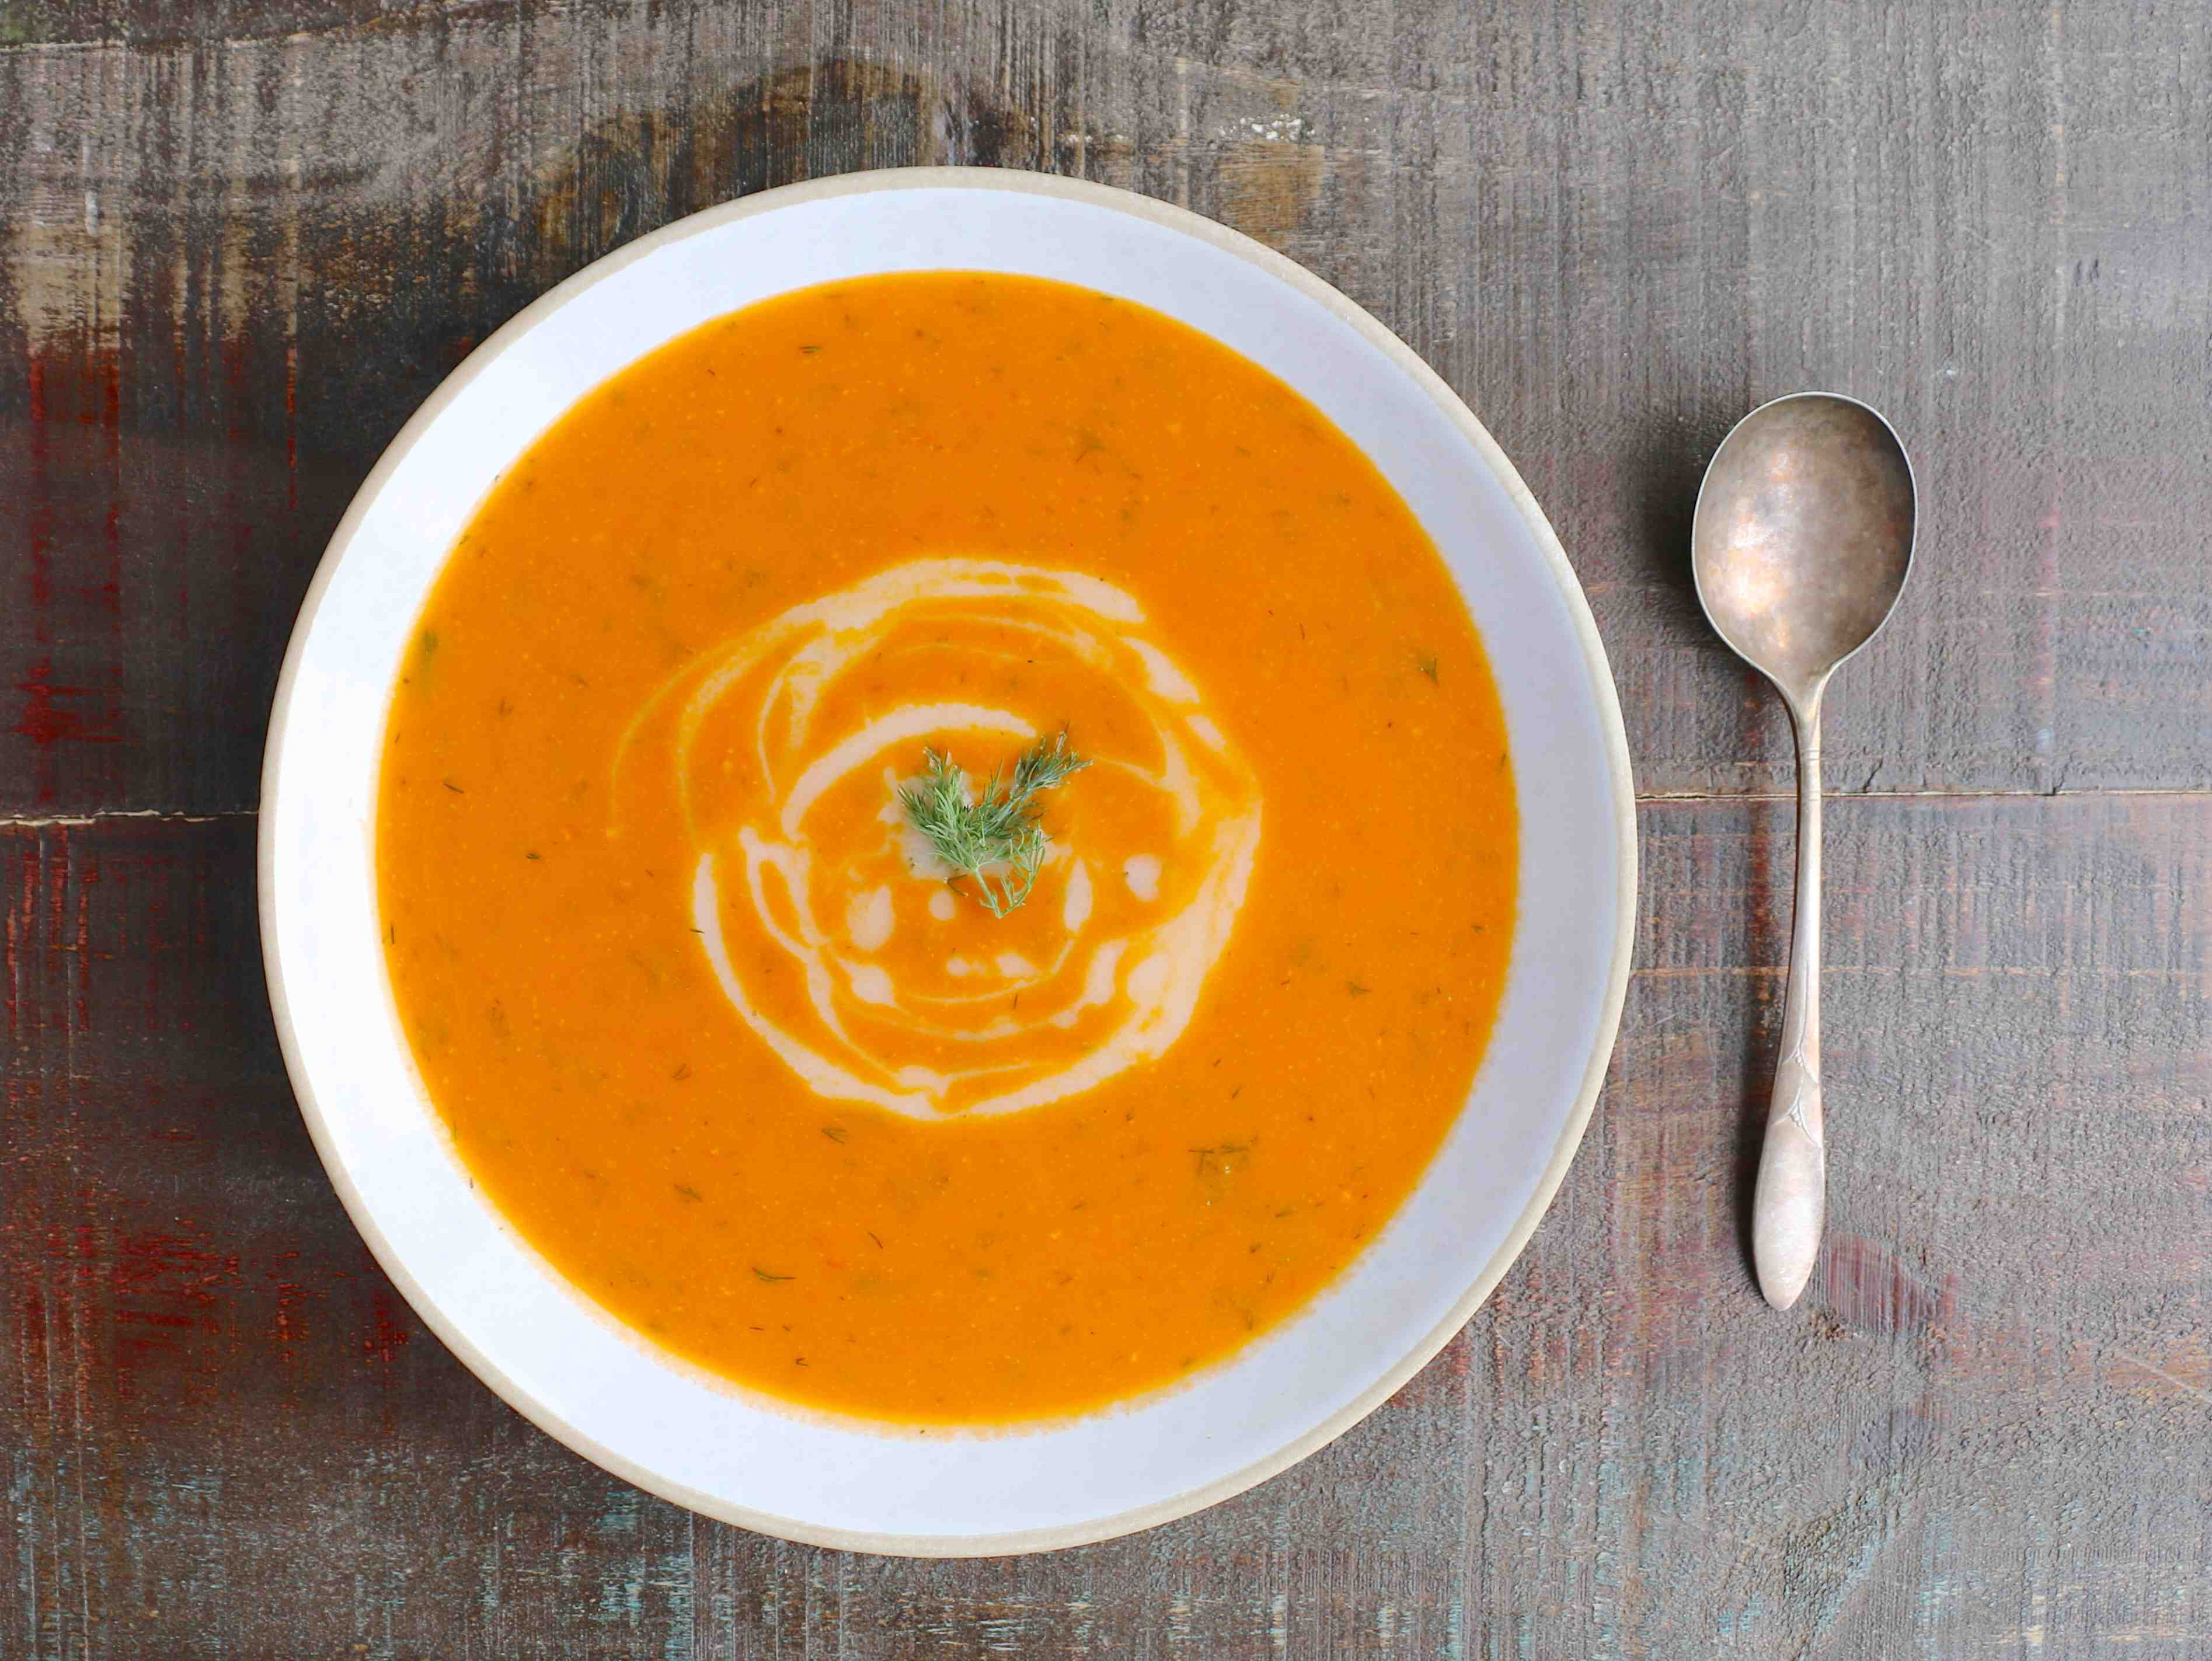 Roasted Tomato and Dill Soup